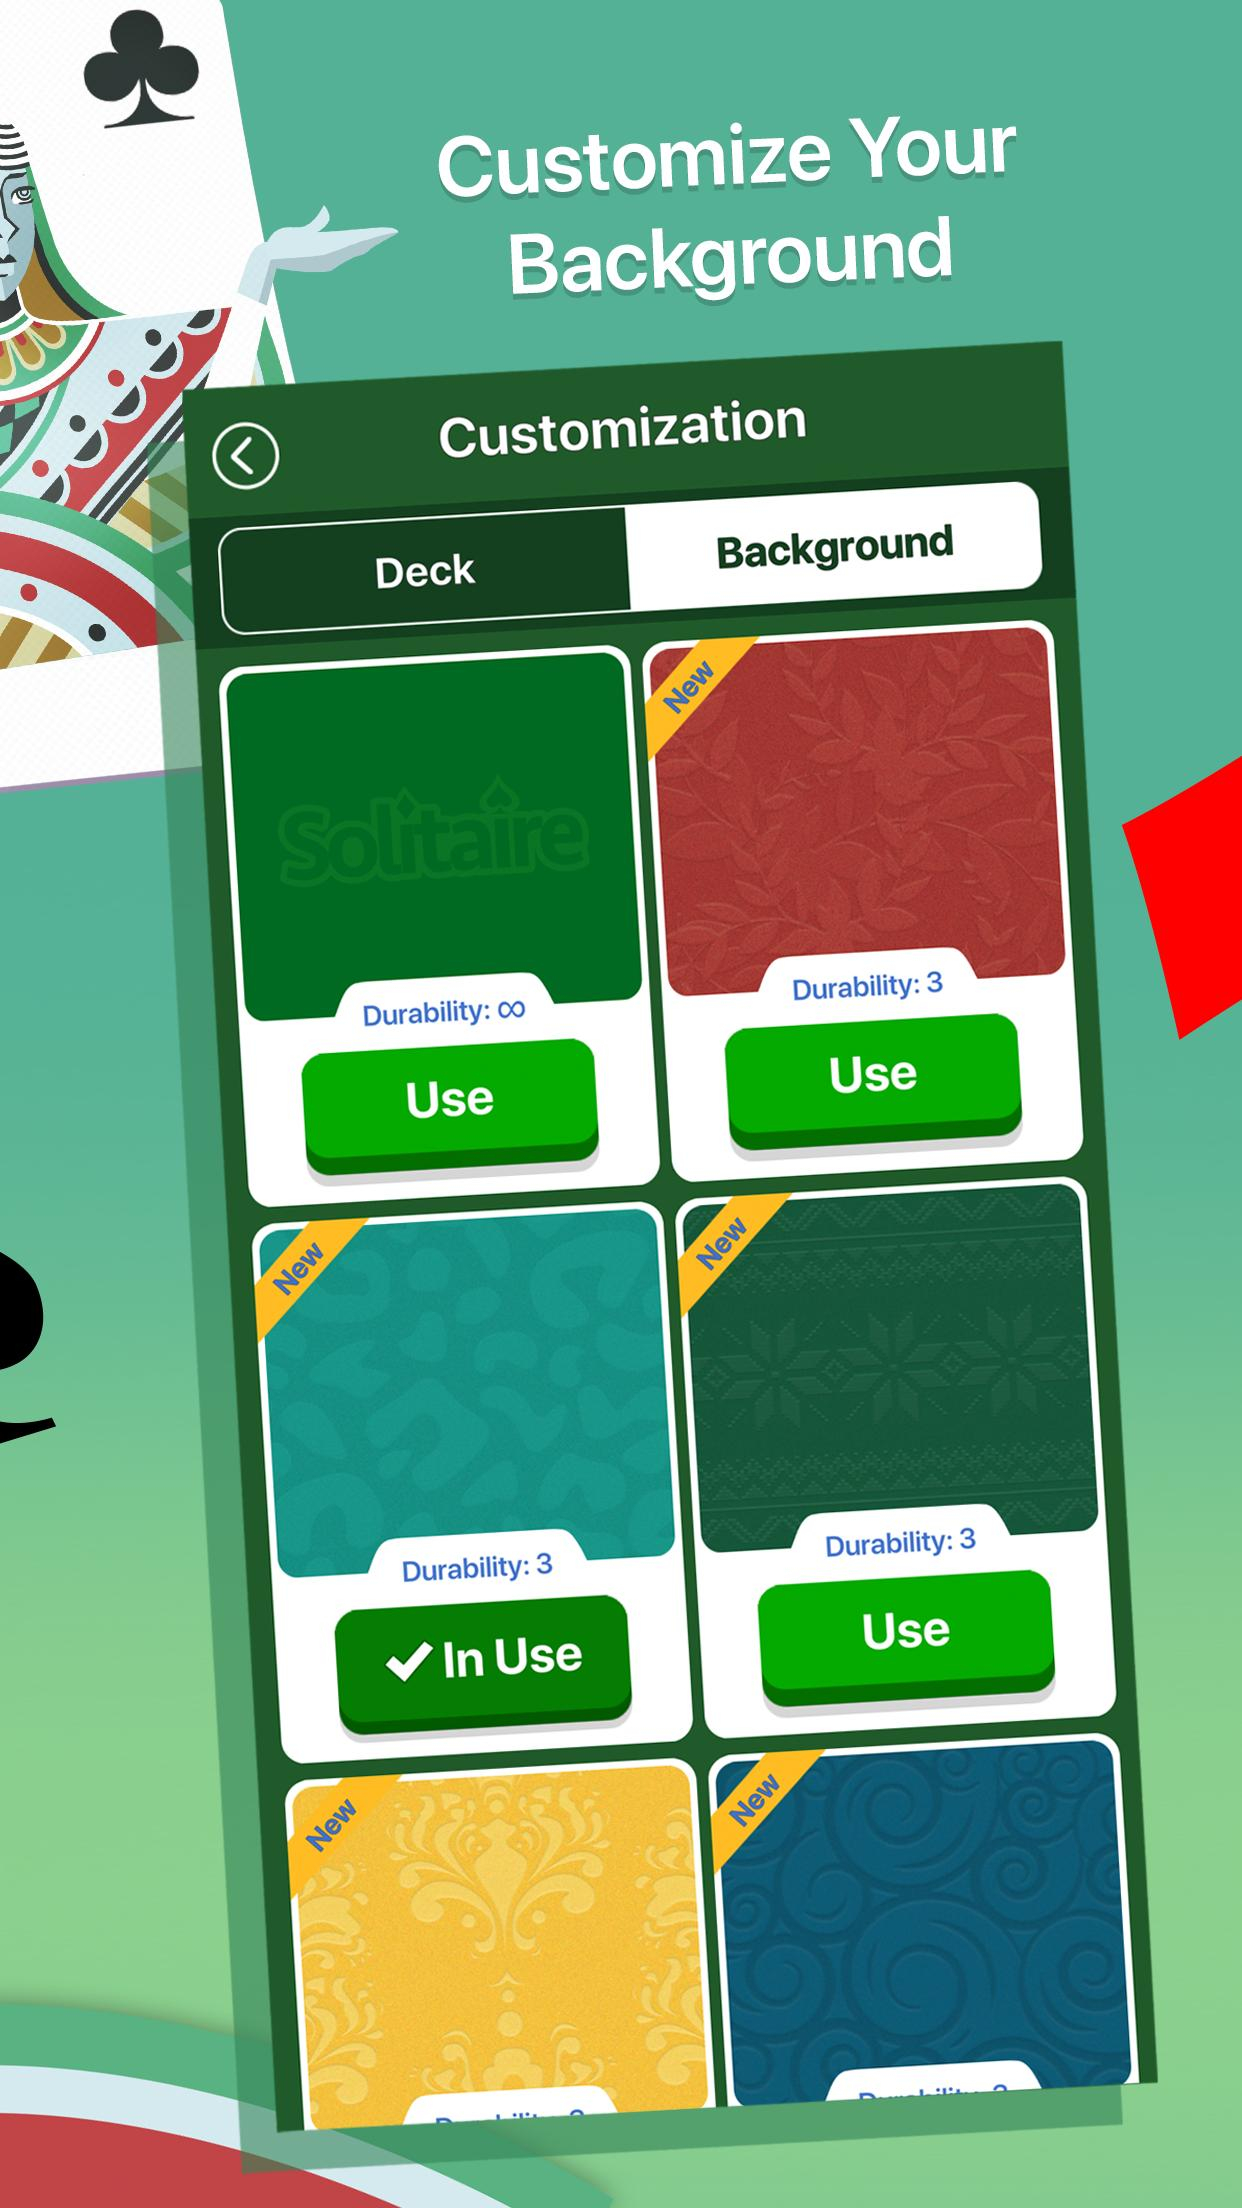 Solitaire 8.4.1 Screenshot 5